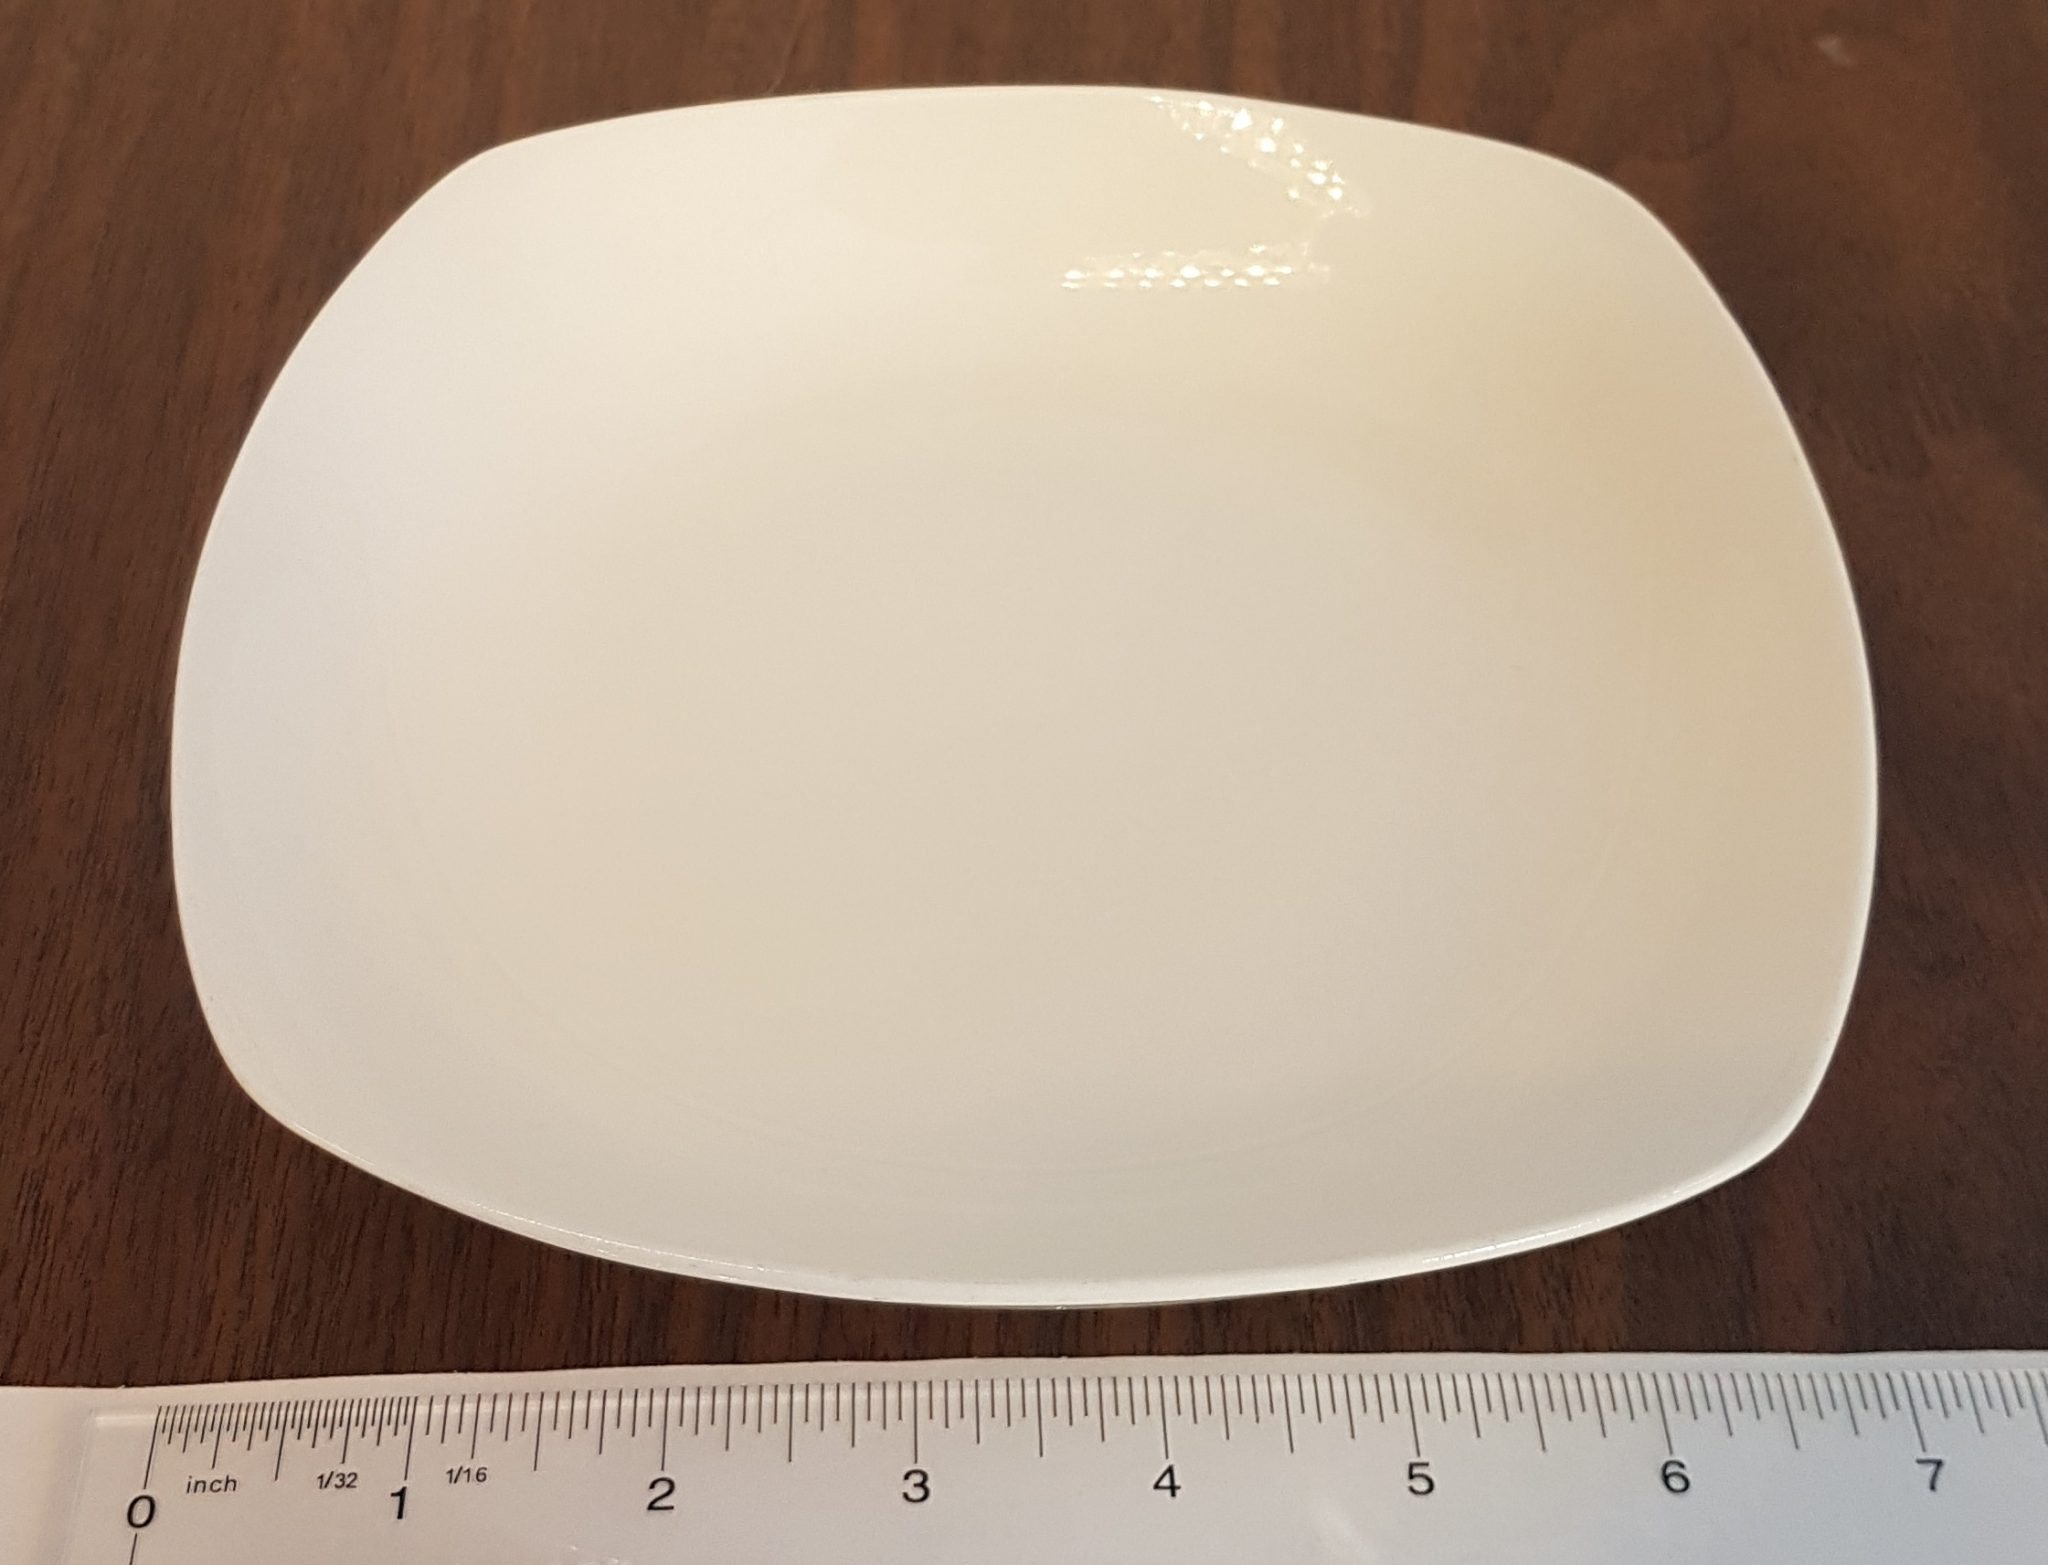 Small_Plate_7_inch